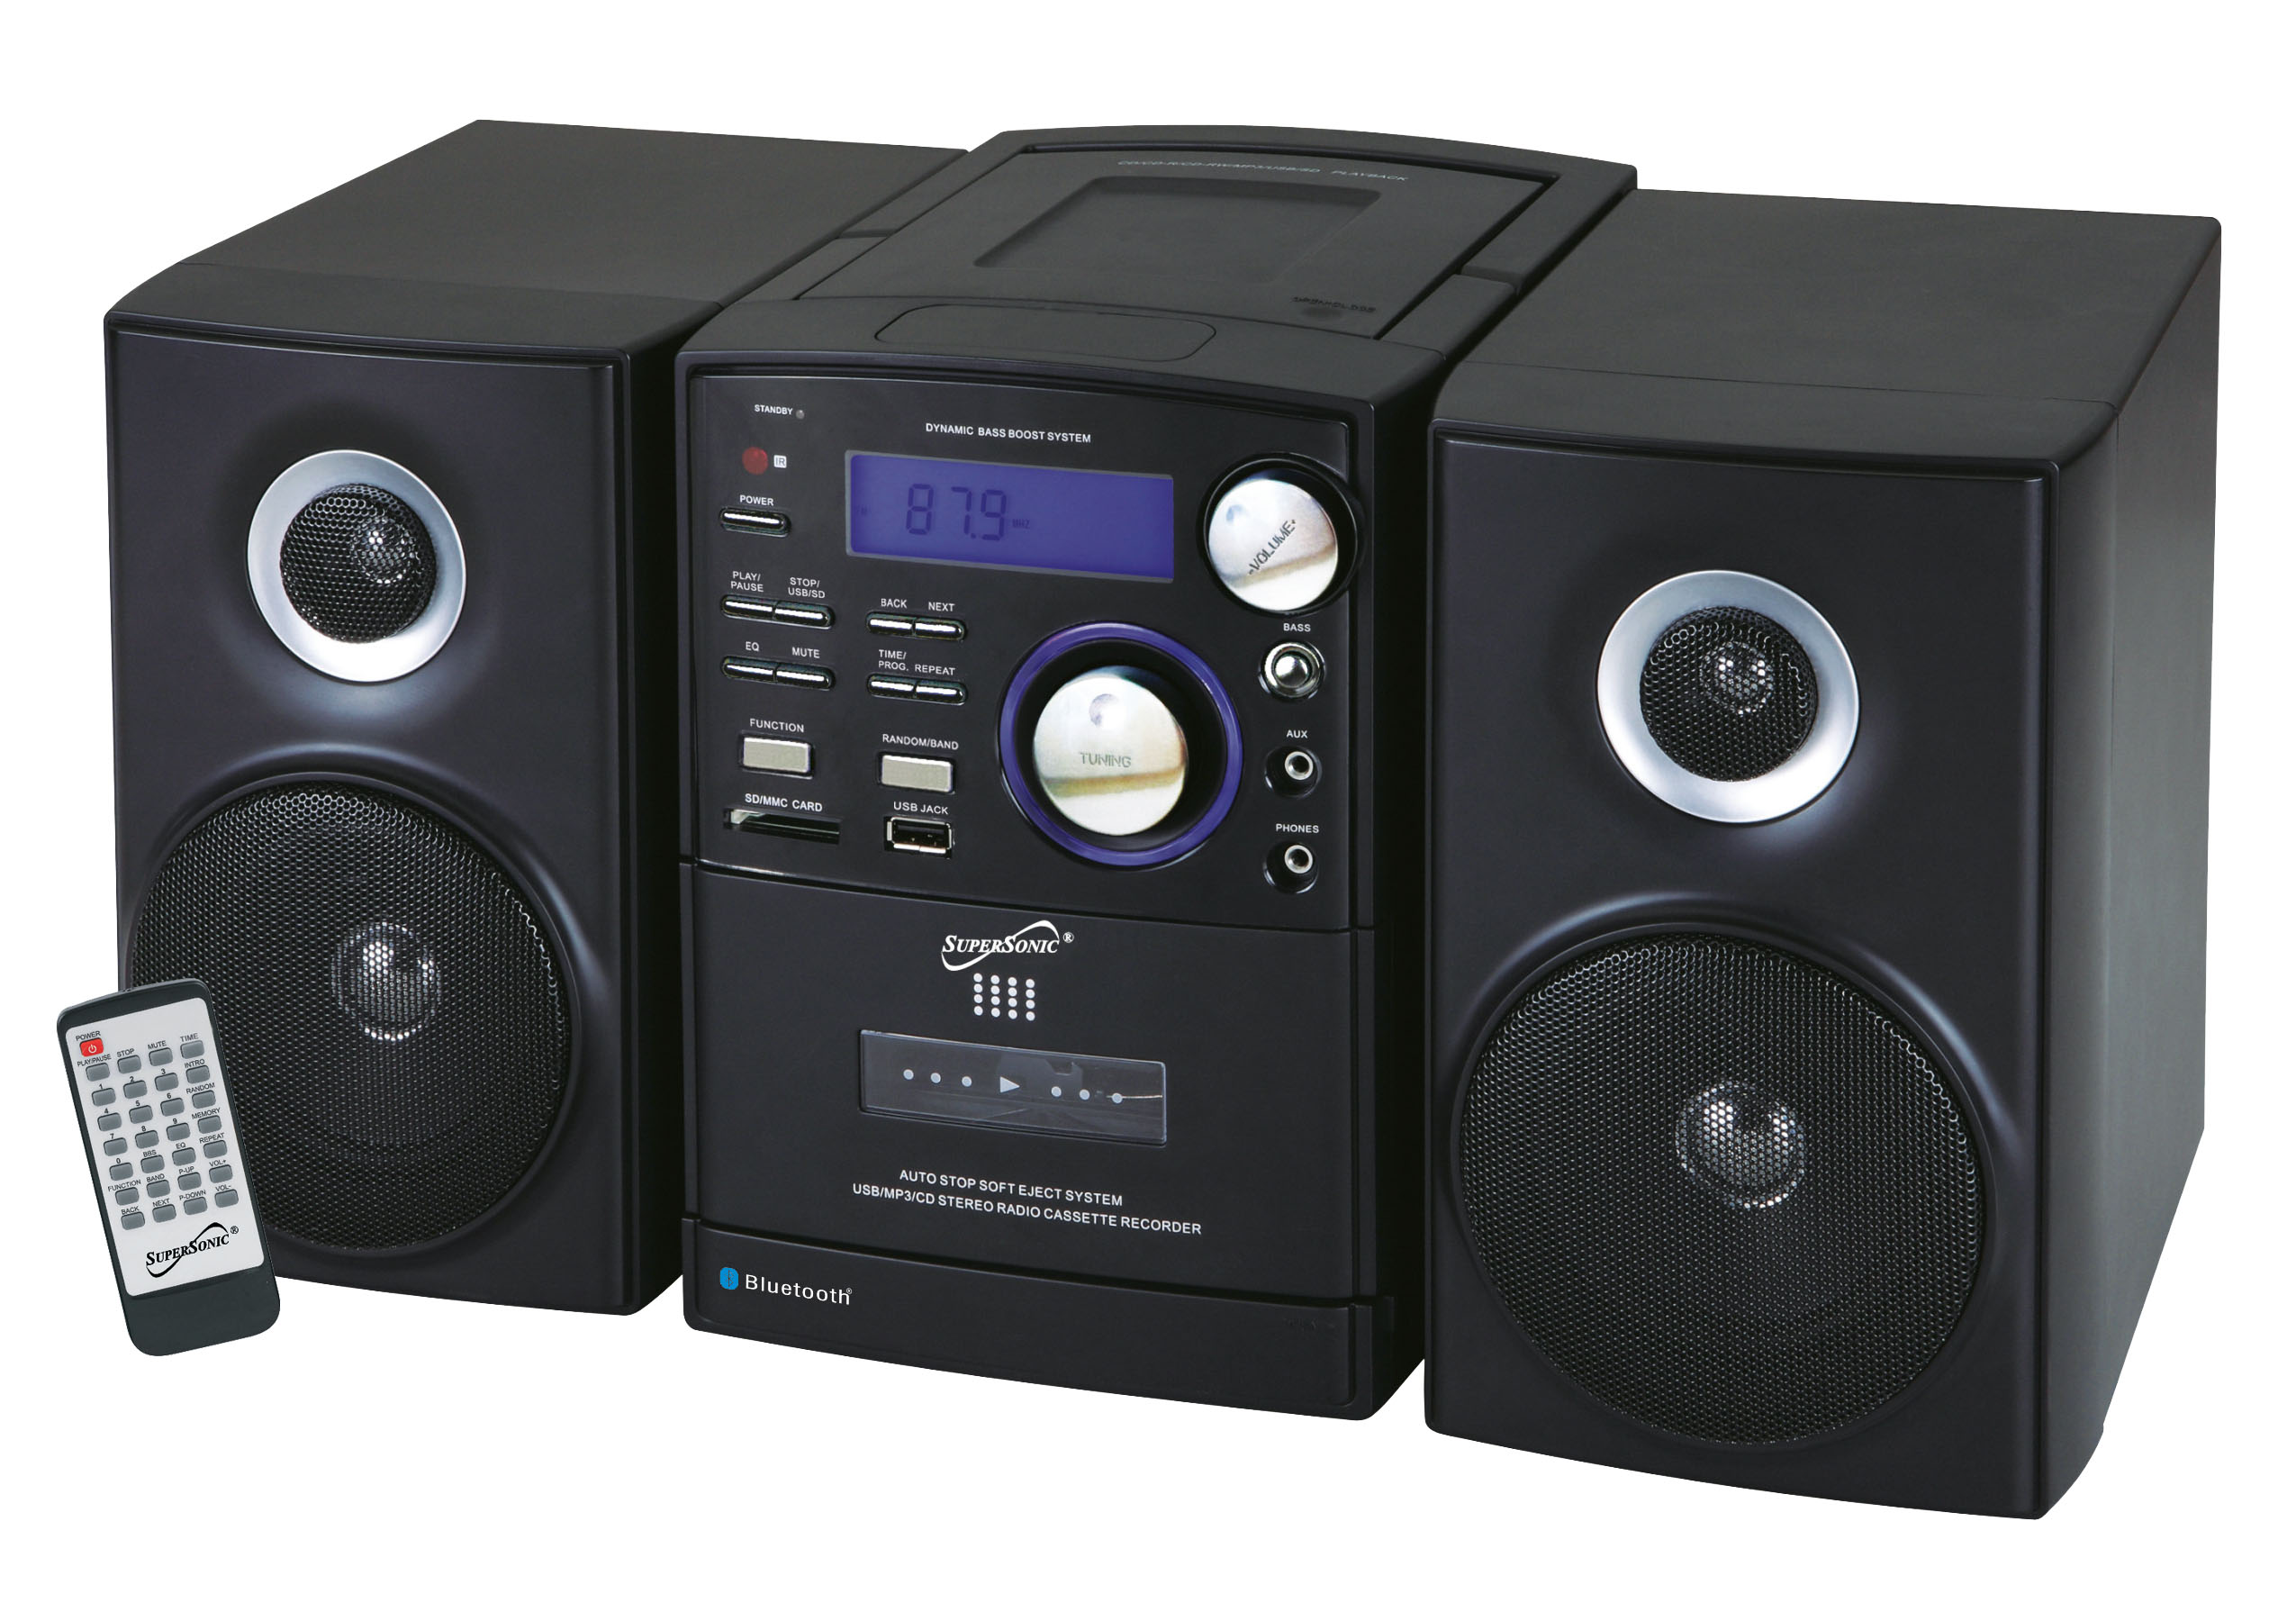 portable audio system with mp3 cd player bluetooth usb sd aux inputs cassette recorder am. Black Bedroom Furniture Sets. Home Design Ideas